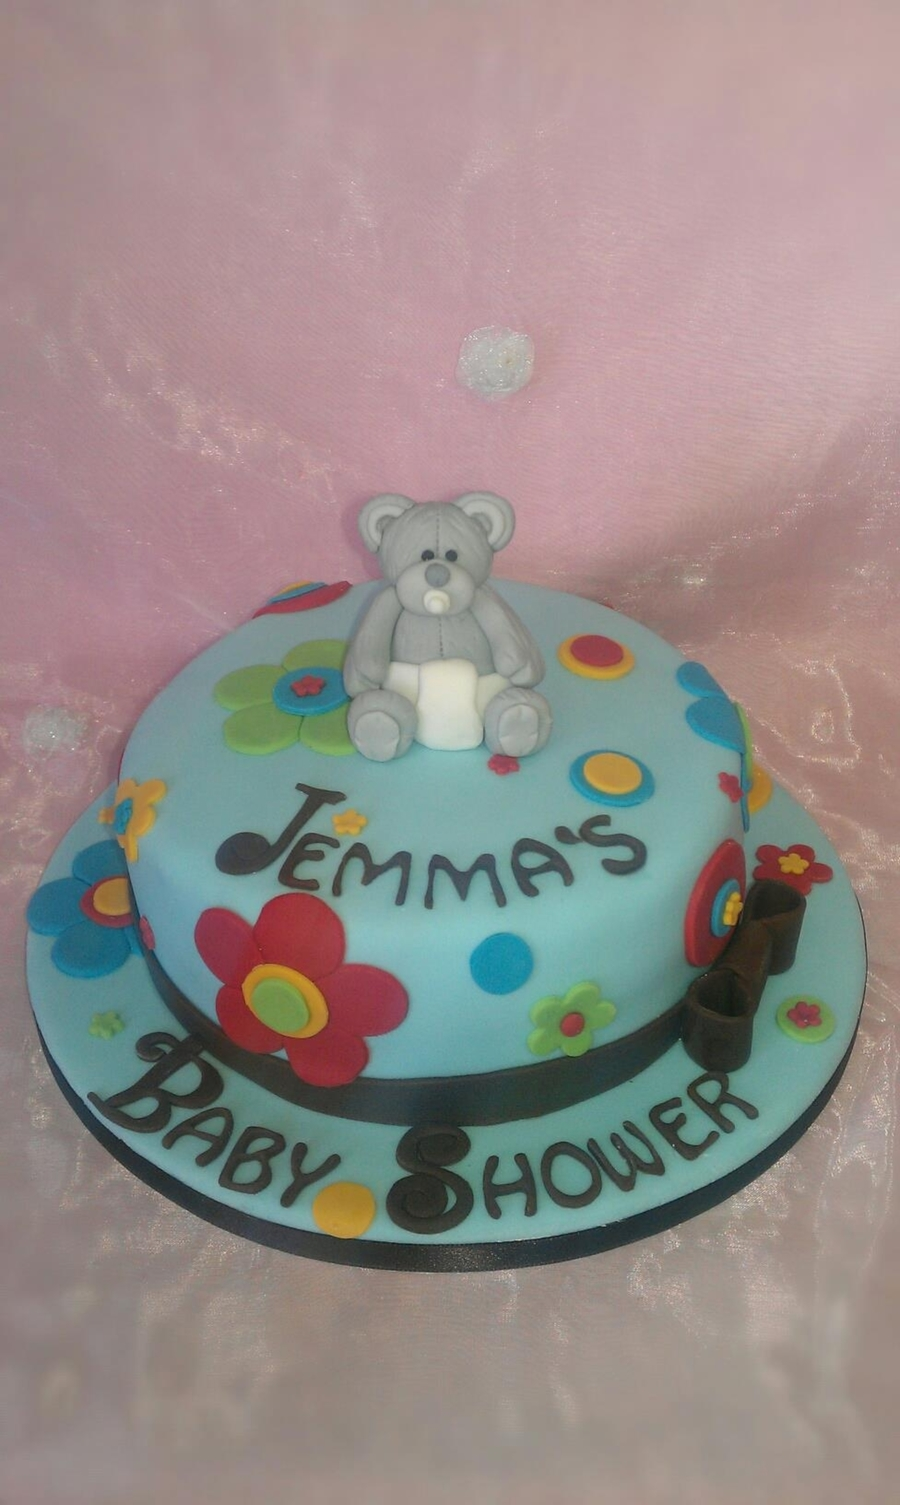 Teddy Flower Baby Shower on Cake Central